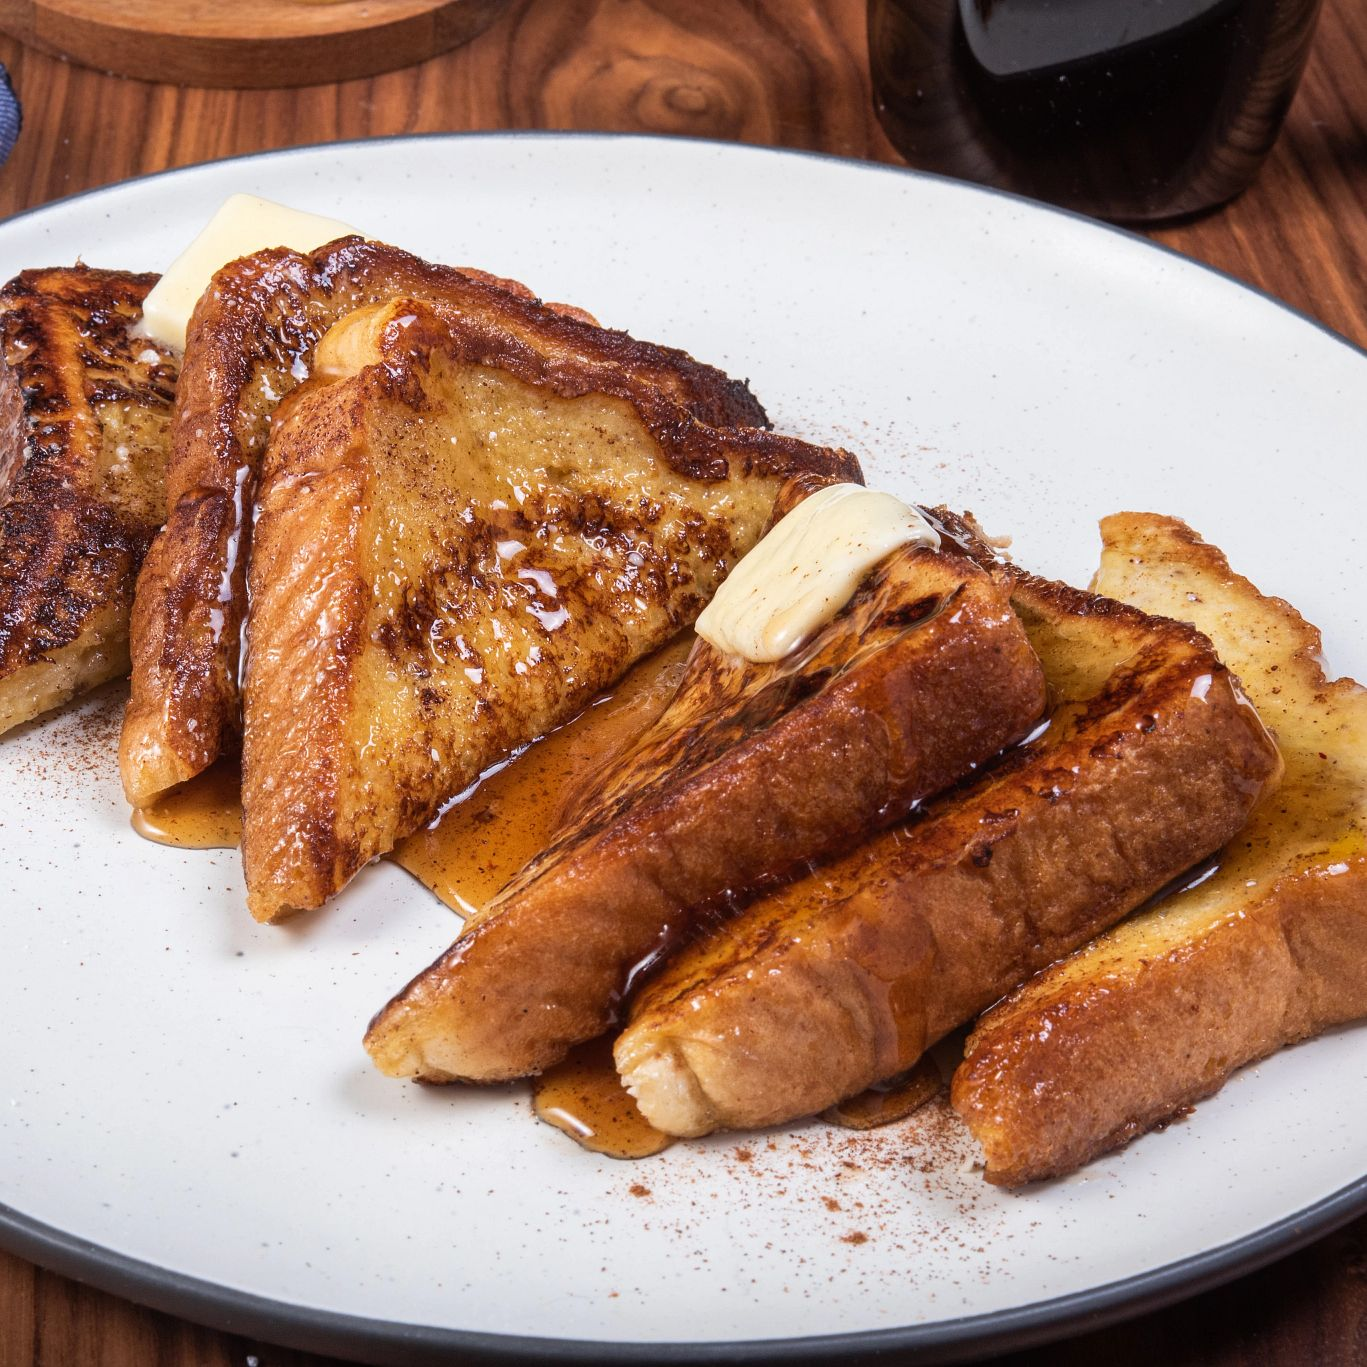 IHOP Sweet and Spicy French Toast